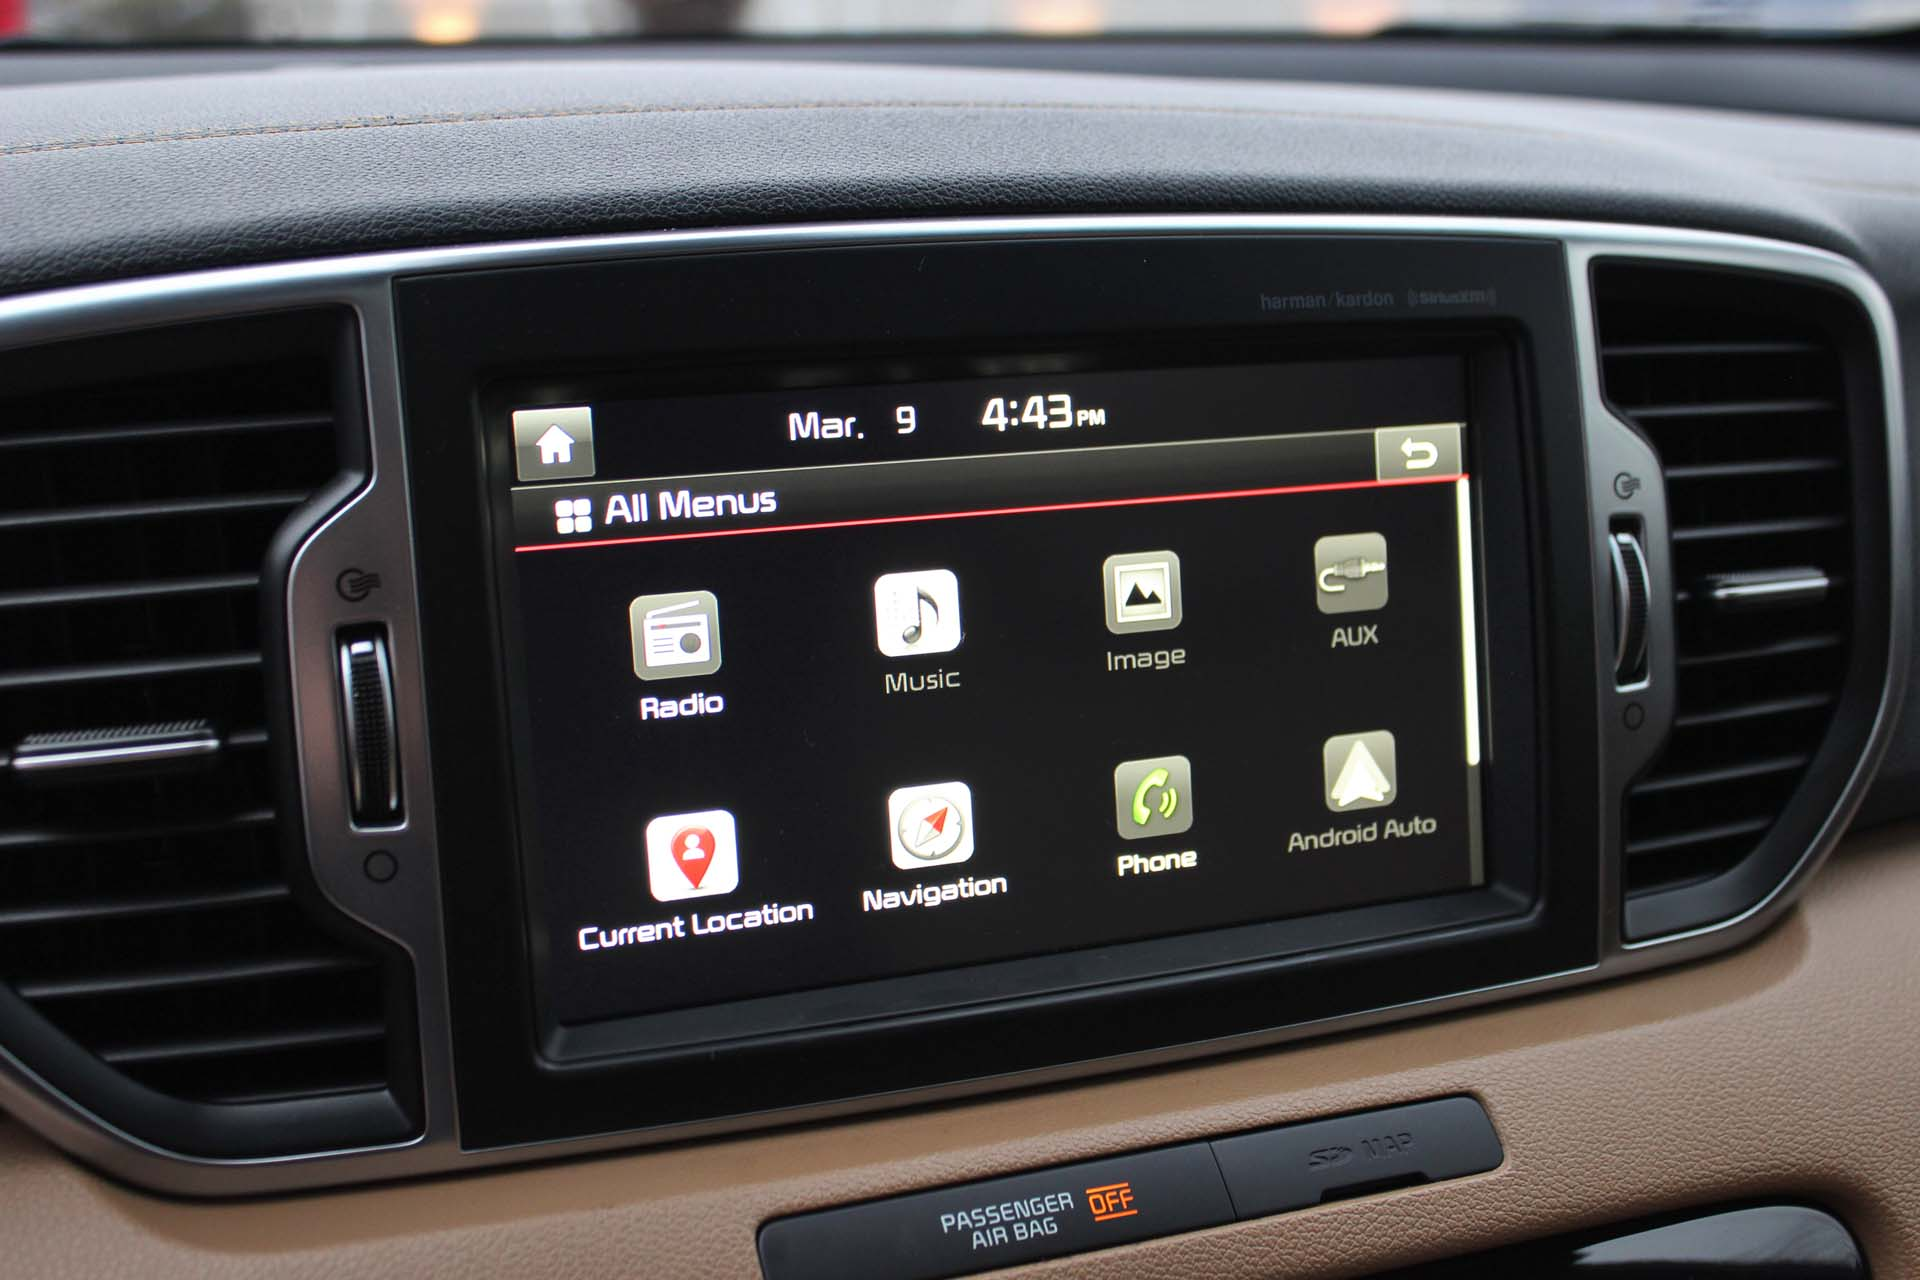 The proprietary Kia UVO infotainment system hasn't changed a huge amount, but the addition of Android Auto compatibility (Apple CarPlay is on the way) add an extra layer of tech to the proceedings. It's all displayed on a responsive touchscreen. And, if you really want to hear your tunes, opt for the eight-speaker Harman/Kardon 320-watt audio system.